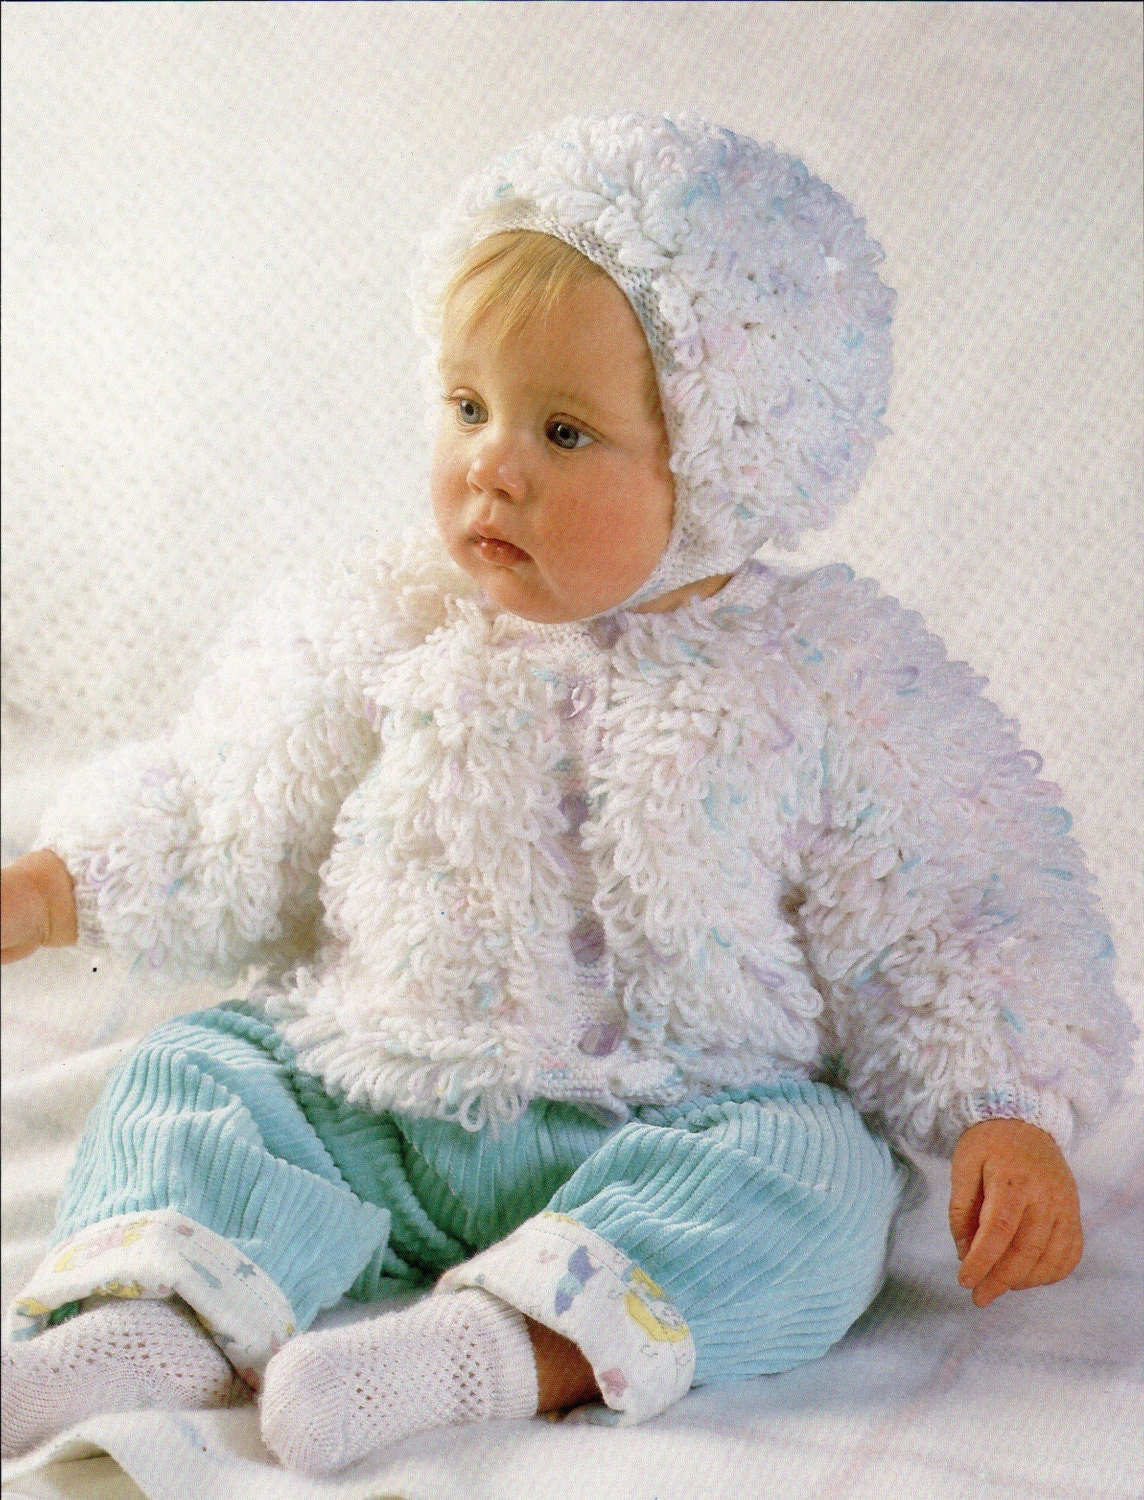 Loopy Cardigan Knitting Pattern : Baby knitting pattern loop stitch cardigan bonnet